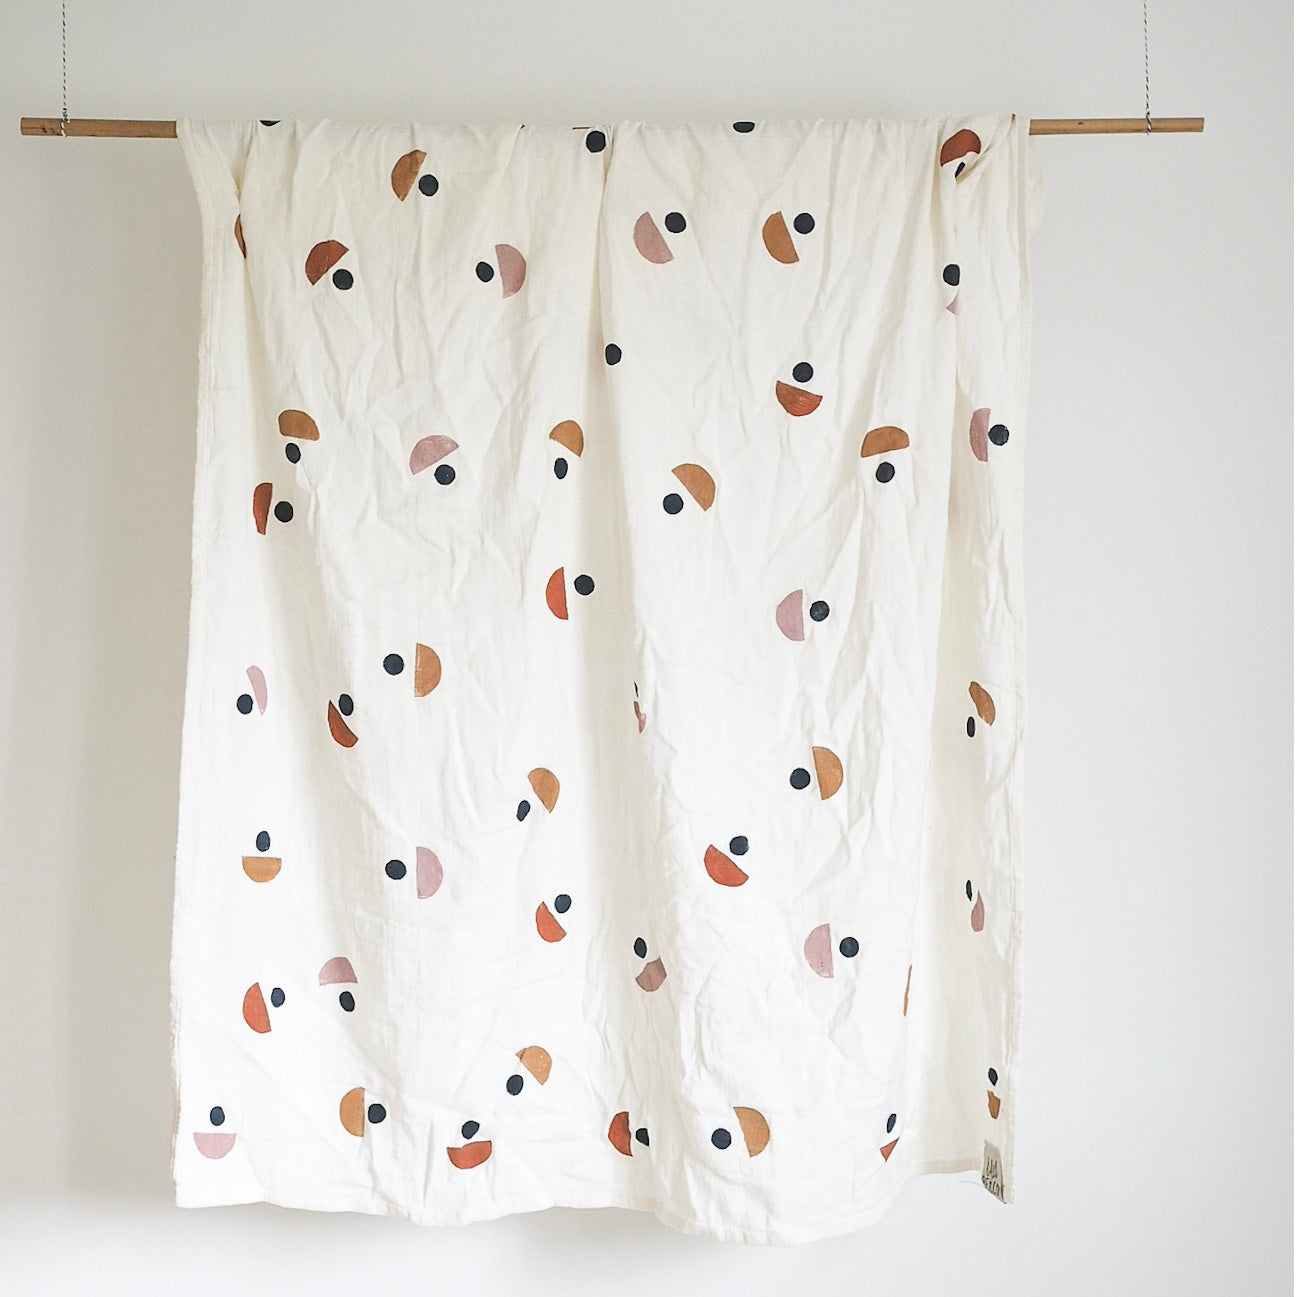 Moon Wrap - Muslin Swaddle - LAST ONE - Wildwood Lane